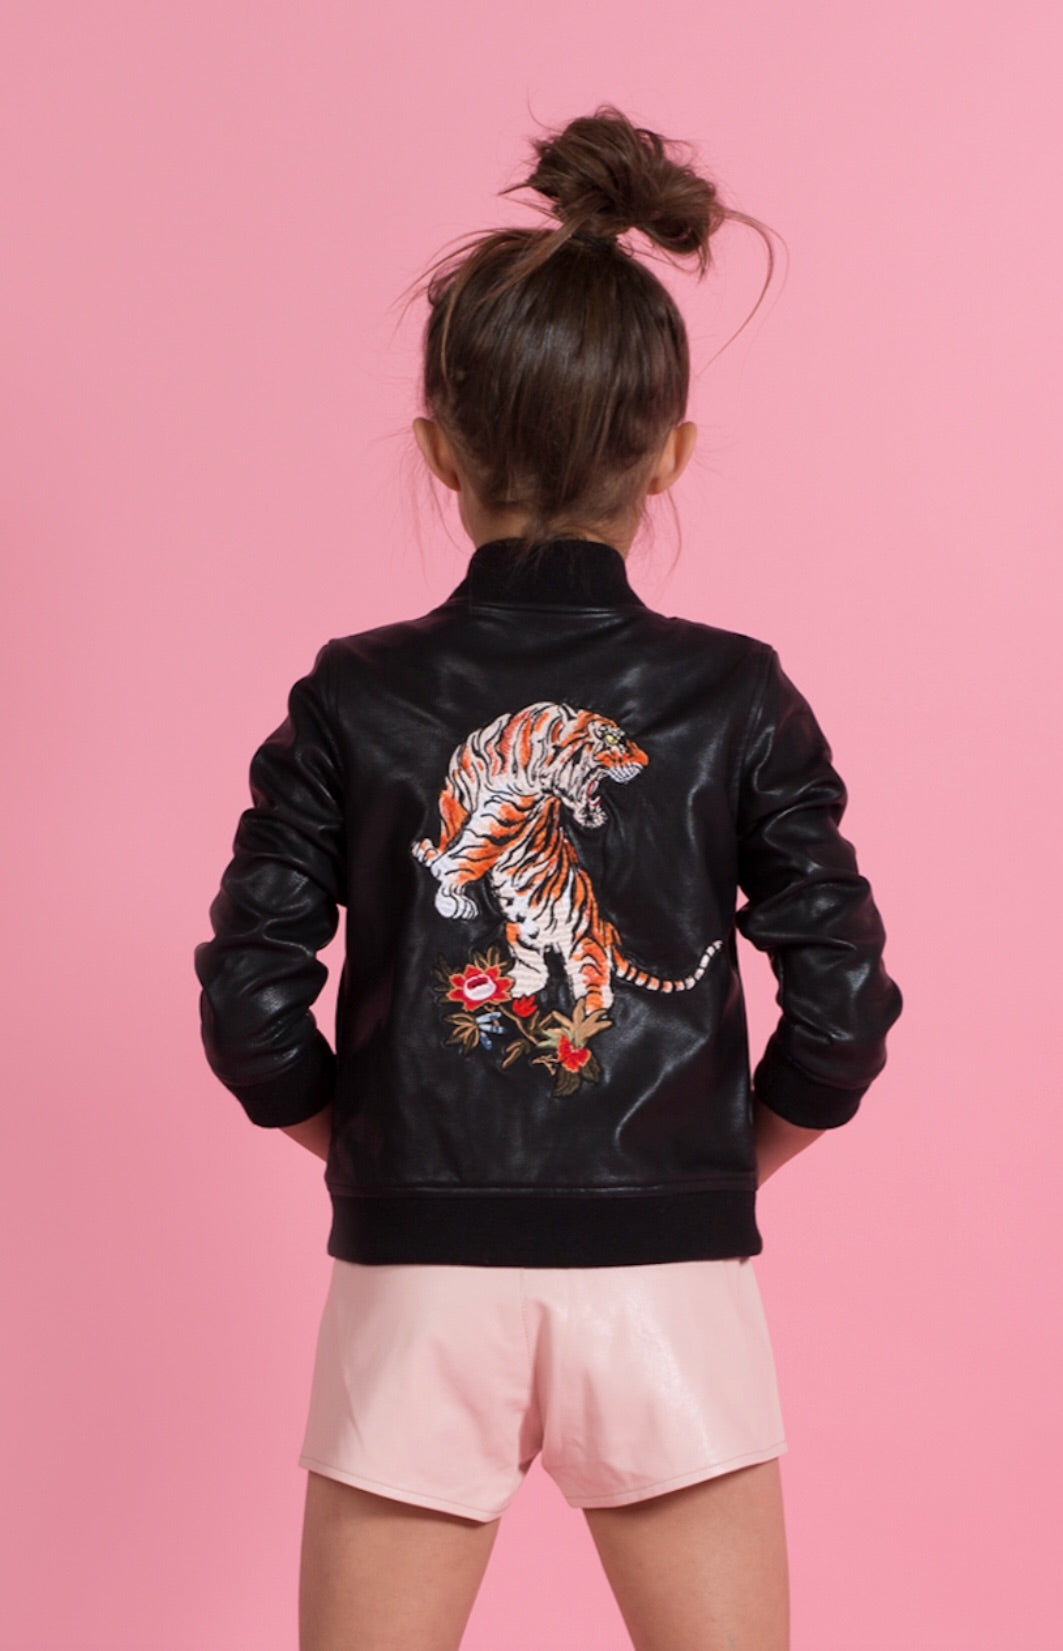 Tiger Bomber - Black Vegan Leather